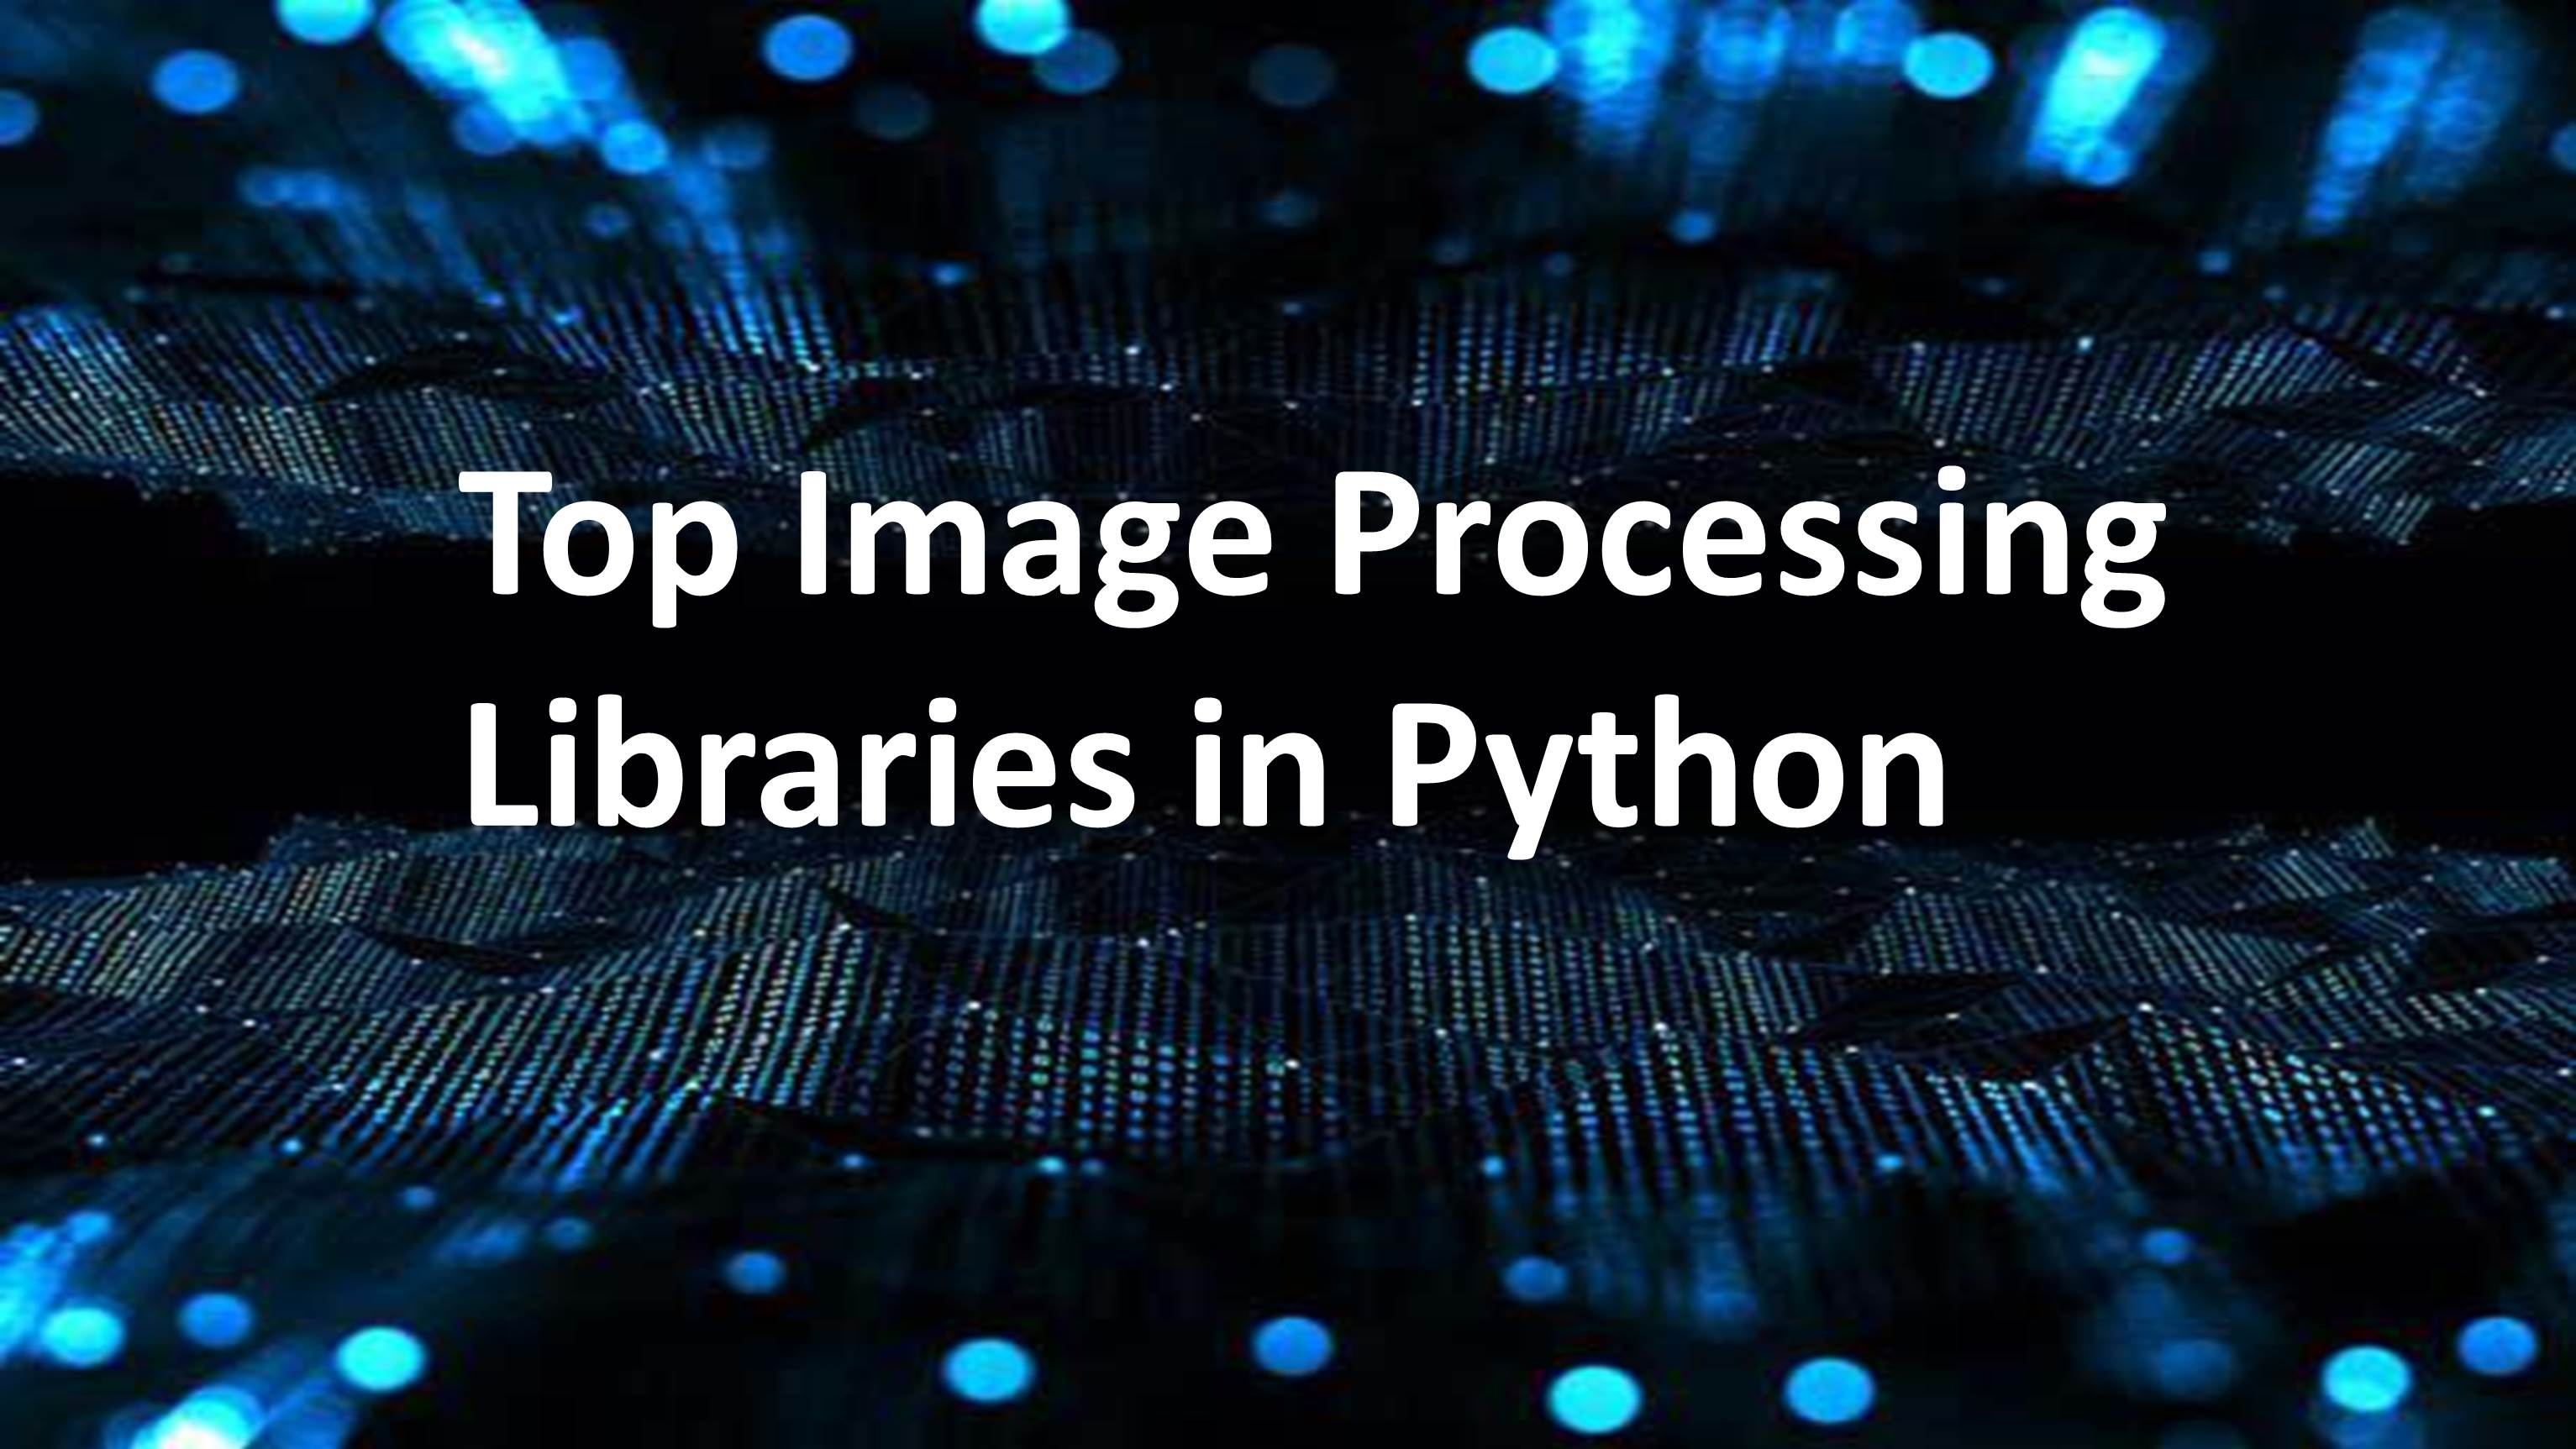 Top Image Processing Libraries in Python